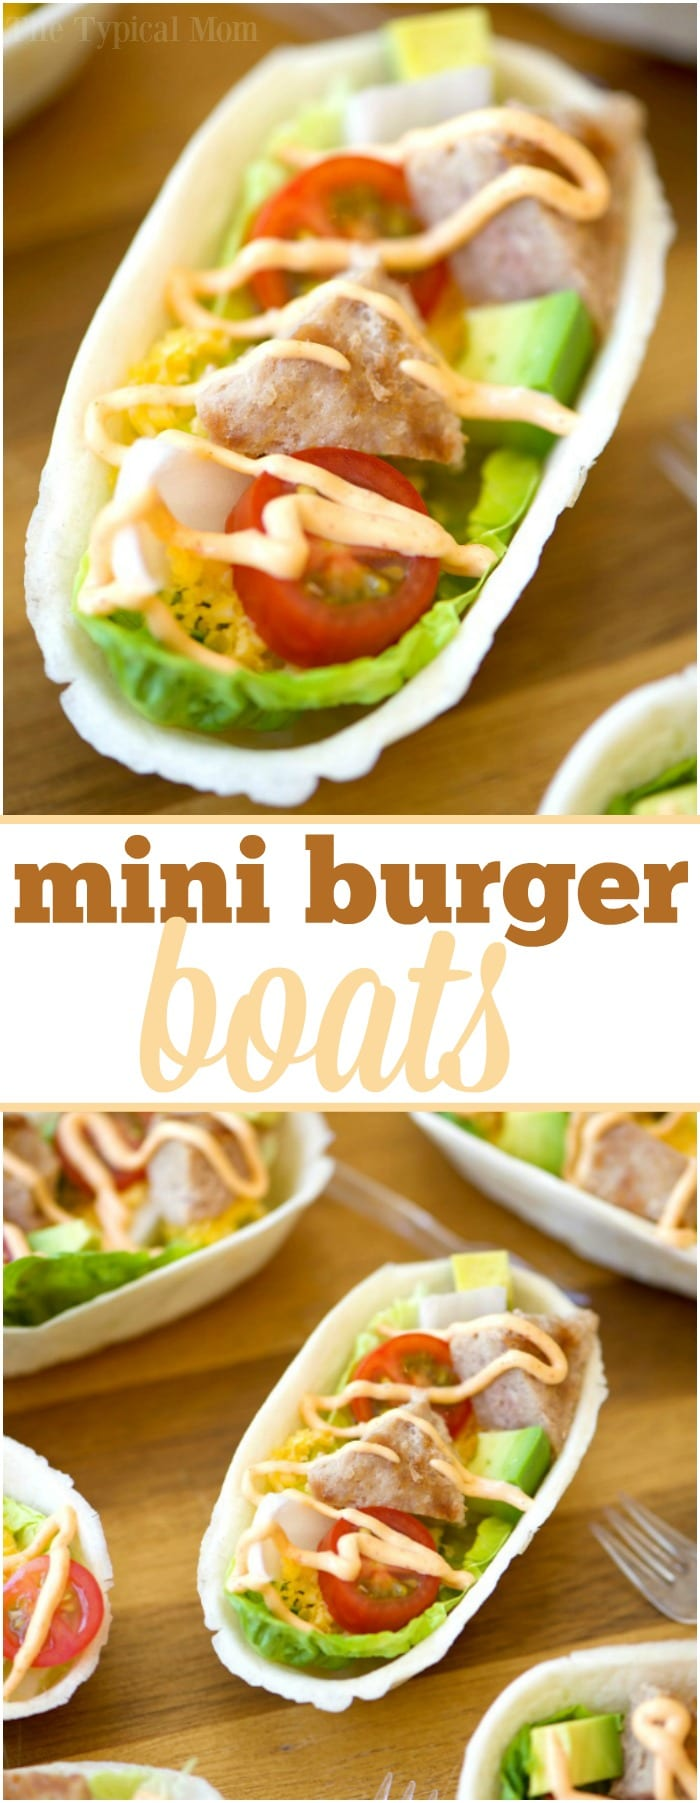 These mini turkey burger boats are the best appetizers! Packed with protein and fresh produce they are the perfect bite size for everyone, and healthy too. #appetizers #burger #groundbeef #boats #hamburger